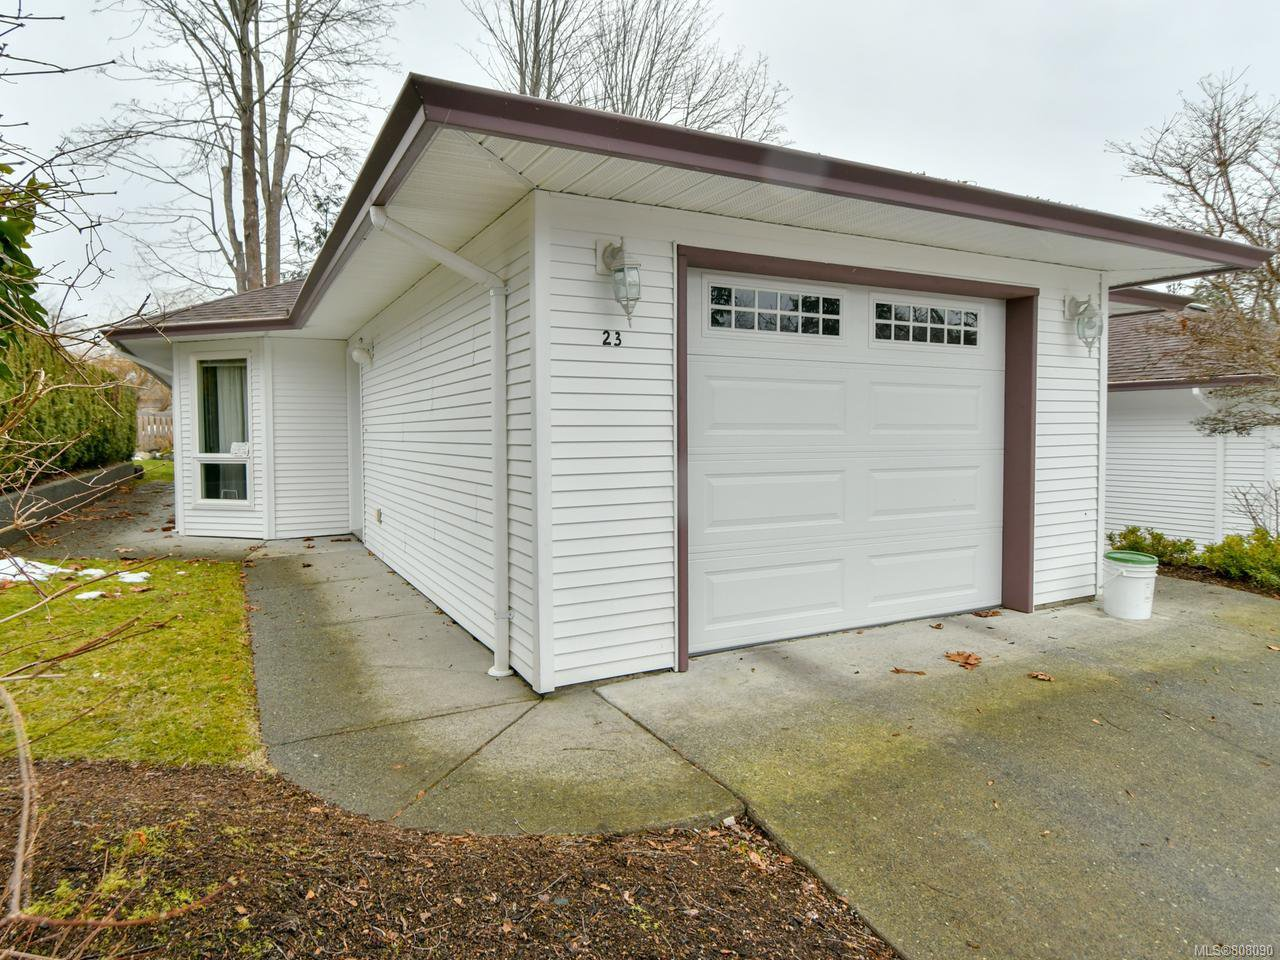 Main Photo: 23 251 MCPHEDRAN ROAD in CAMPBELL RIVER: CR Campbell River Central Row/Townhouse for sale (Campbell River)  : MLS®# 808090